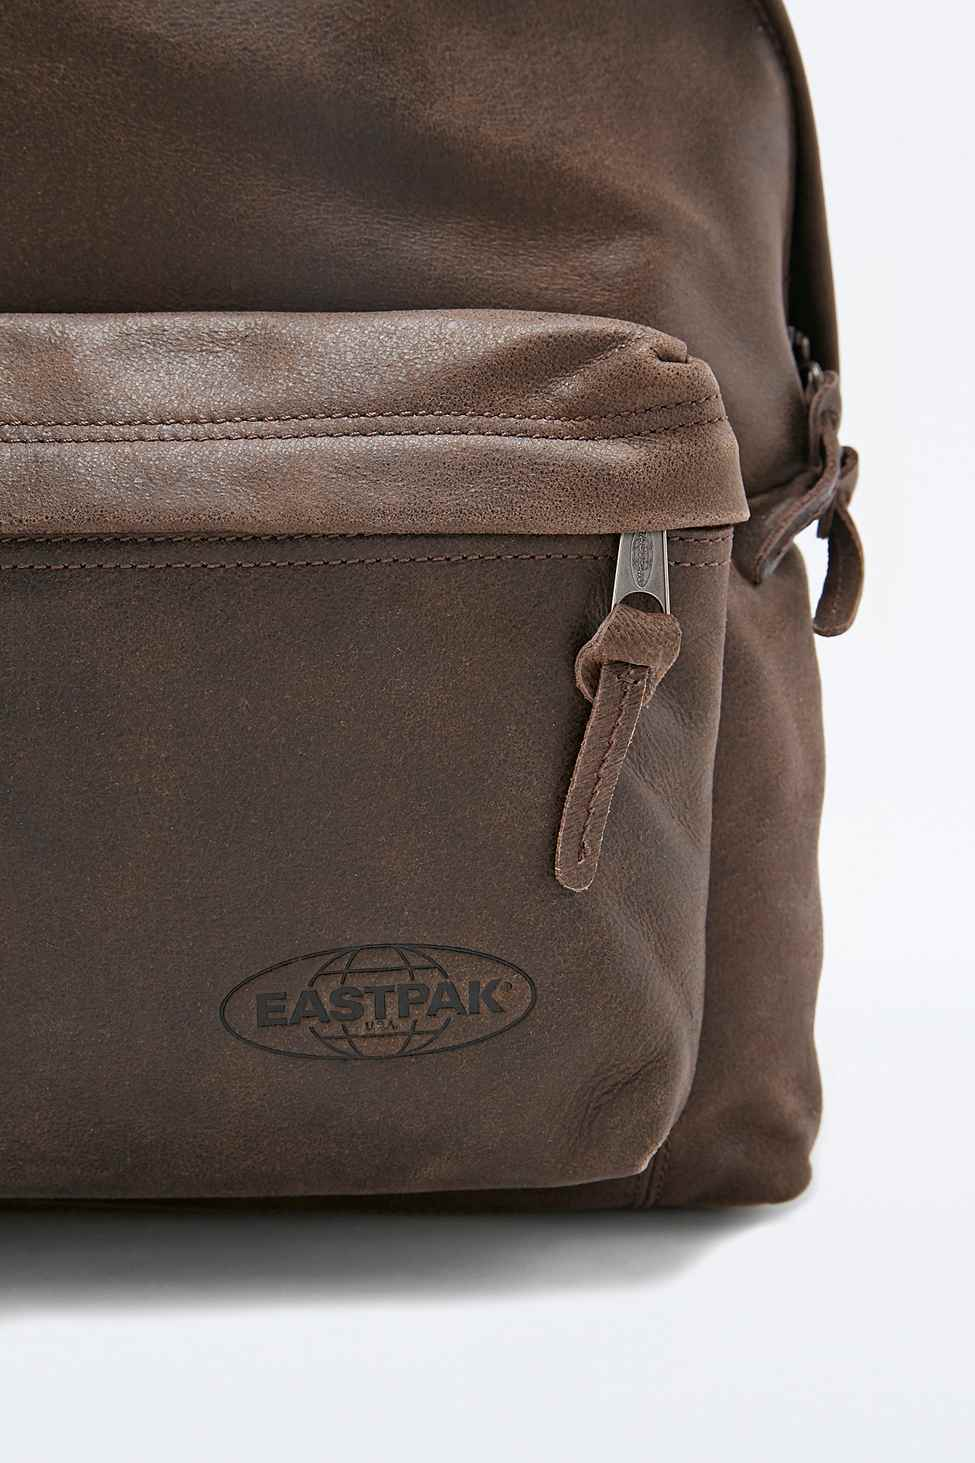 Leather Eastpak Backpack: Eastpak Pak'r Padded Leather Backpack In Chocolate In